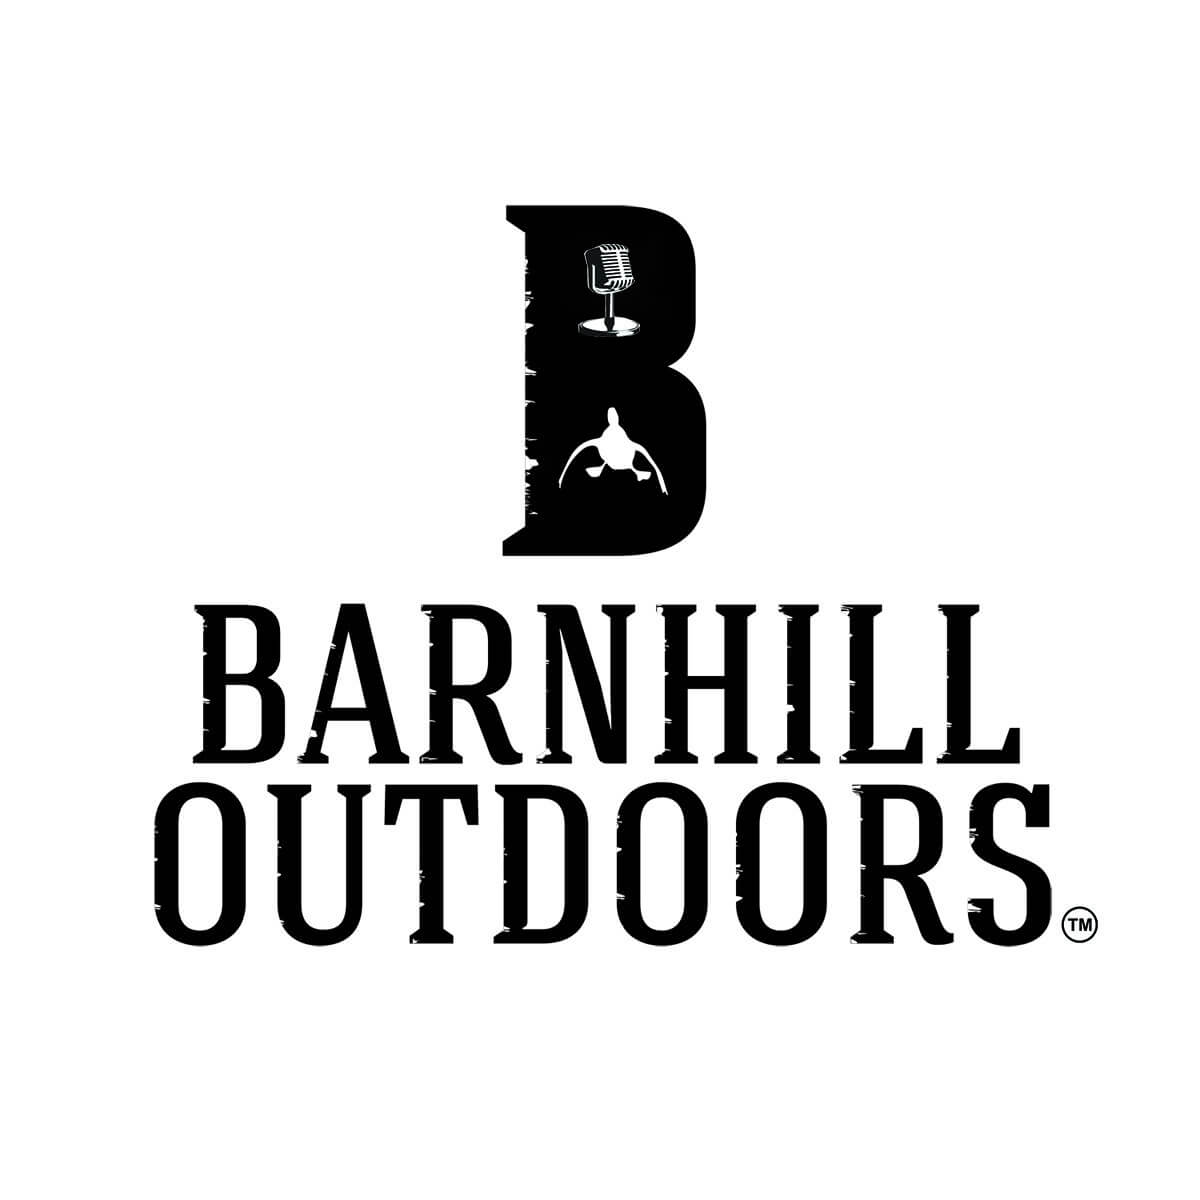 Barnhill Outdoors Episode 12: Watch Me Ying-Yang: An Uncle Mark Tribute